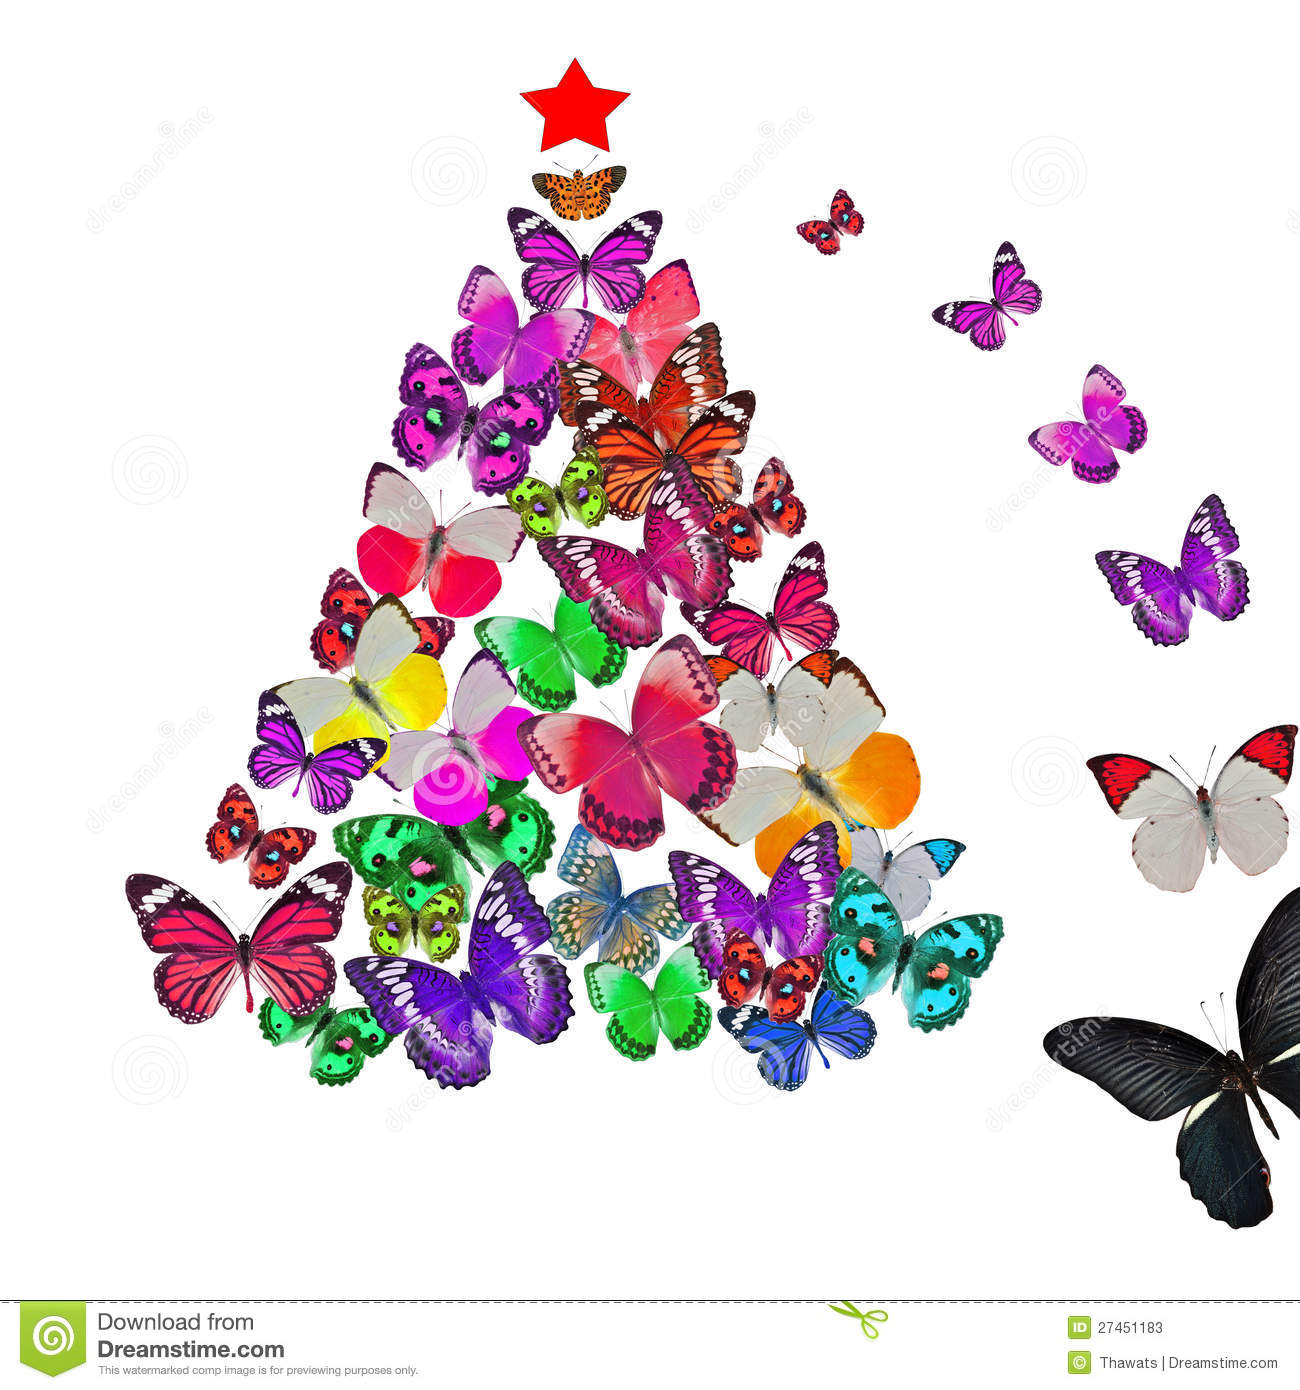 Colorful Butterfly Christmas Card Stock Photos - Image: 27451183